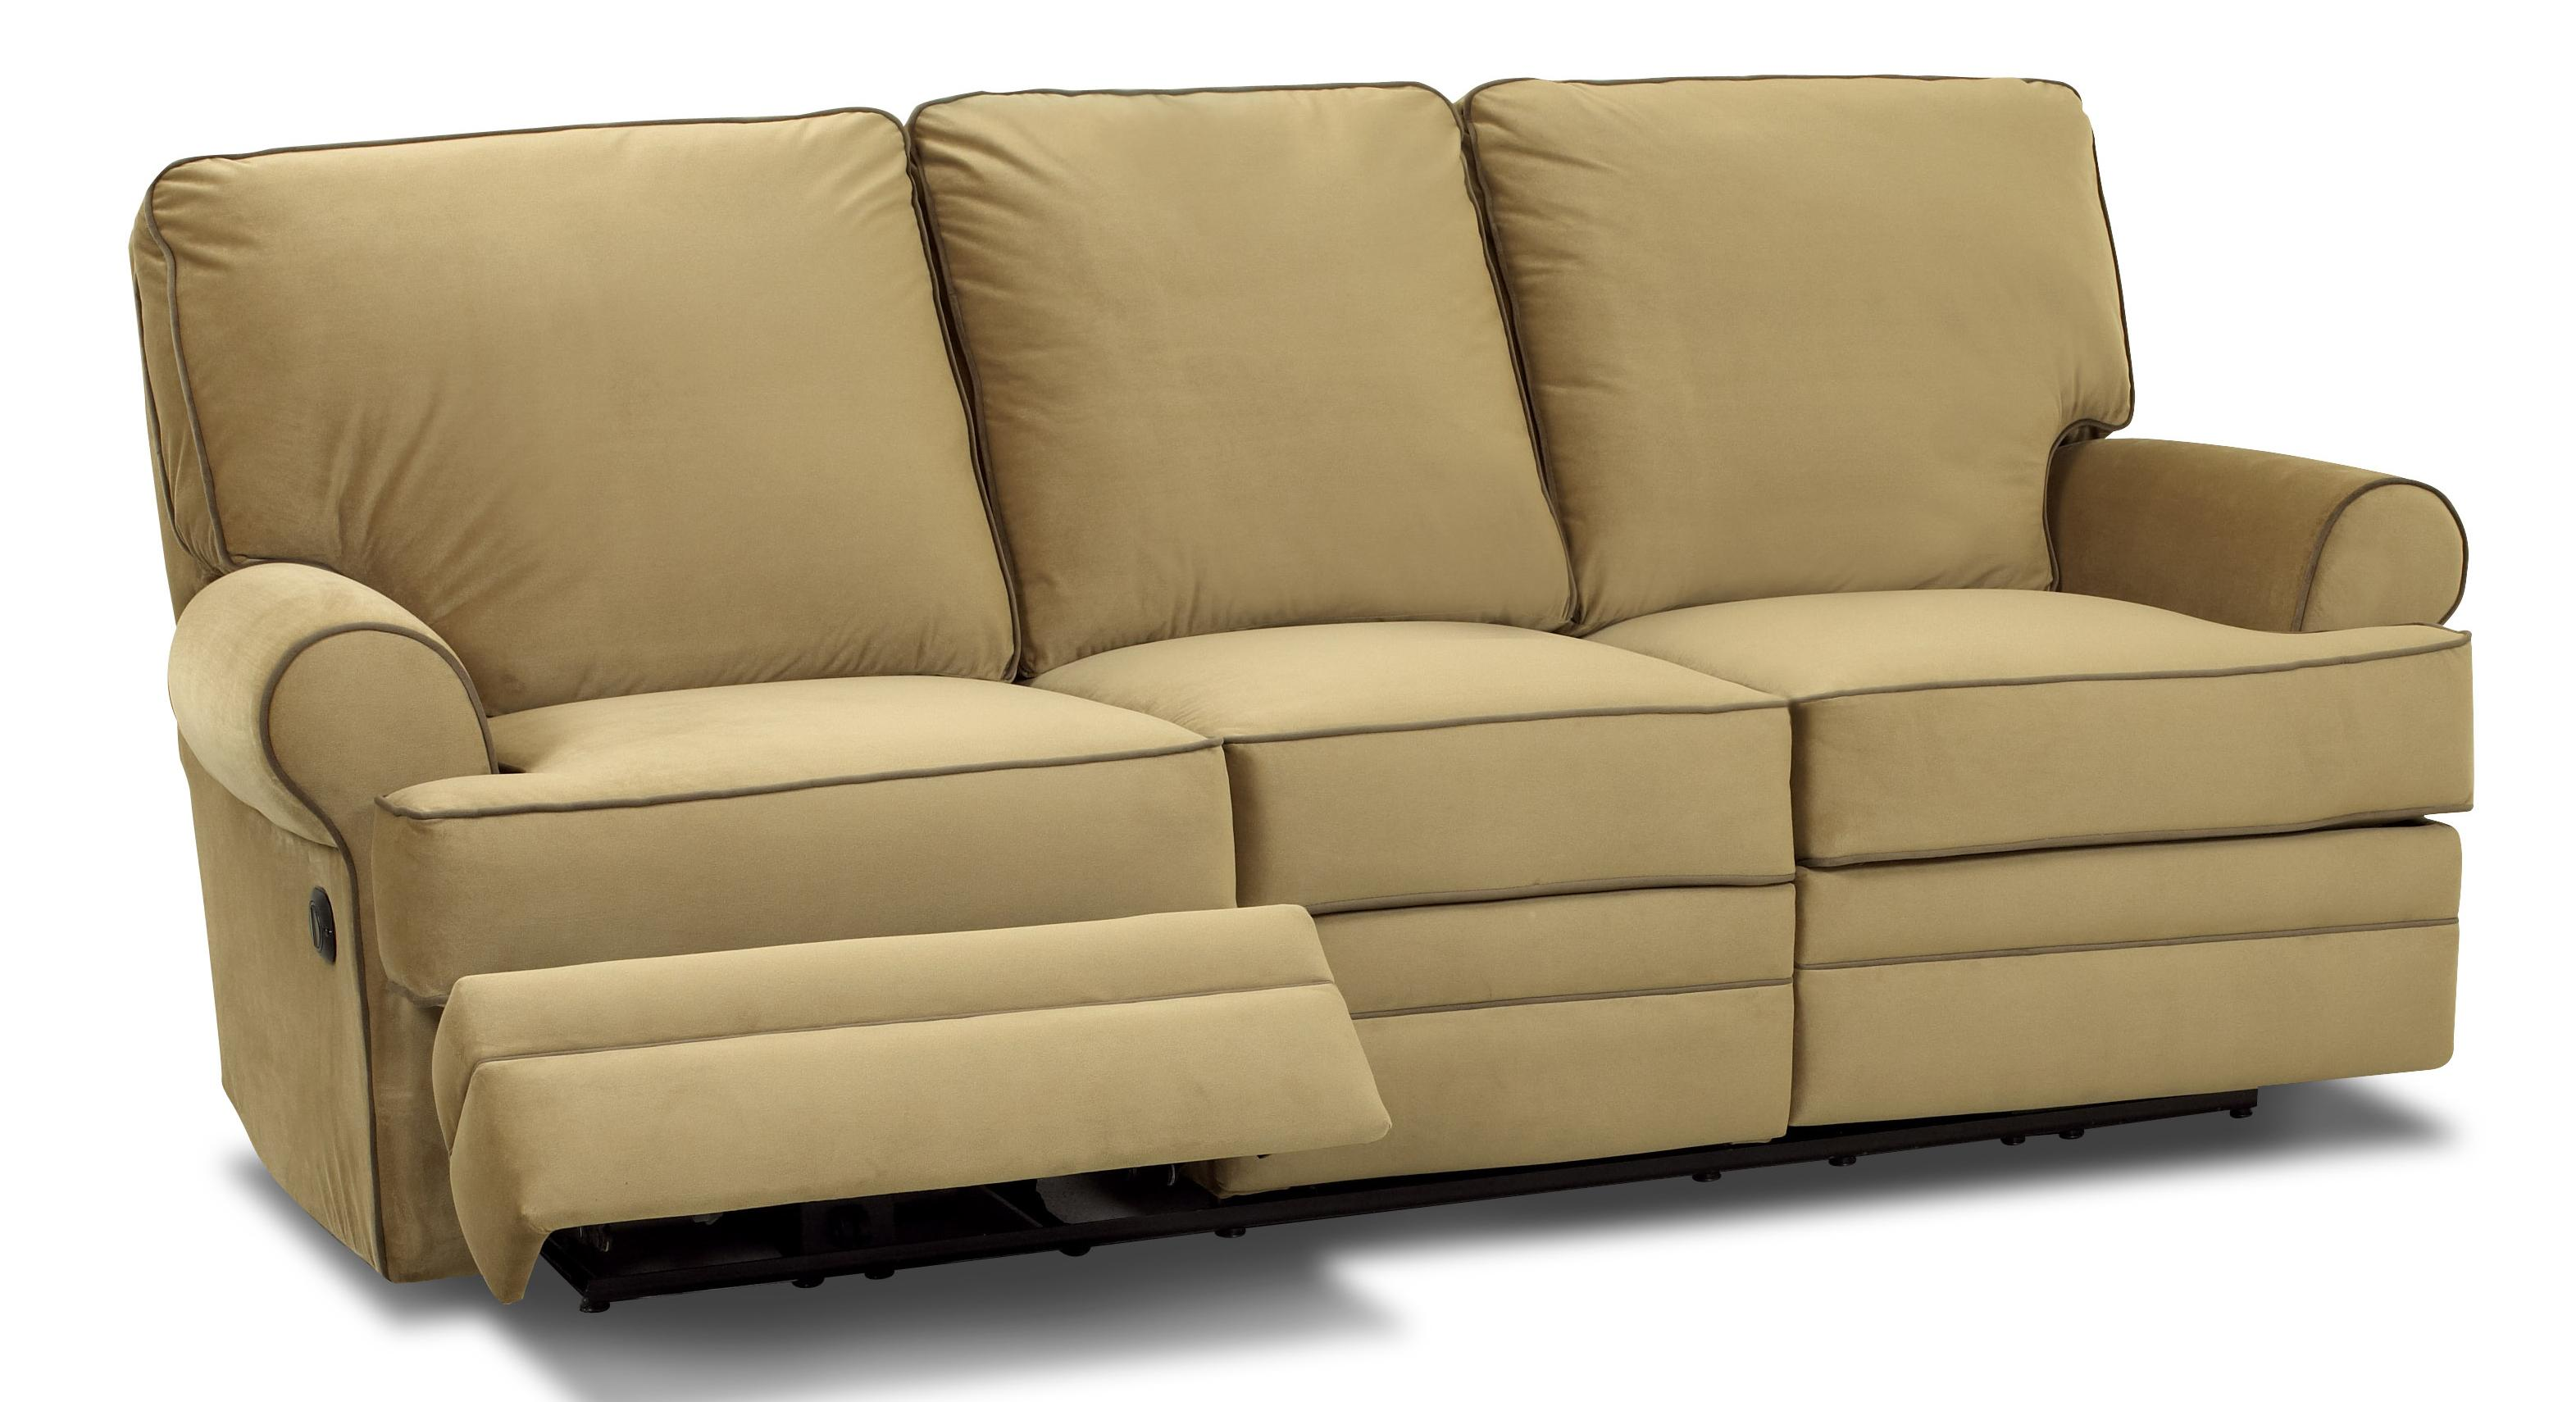 Transitional dual reclining sofa by klaussner wolf and gardiner wolf furniture - Sofa reclinable ...